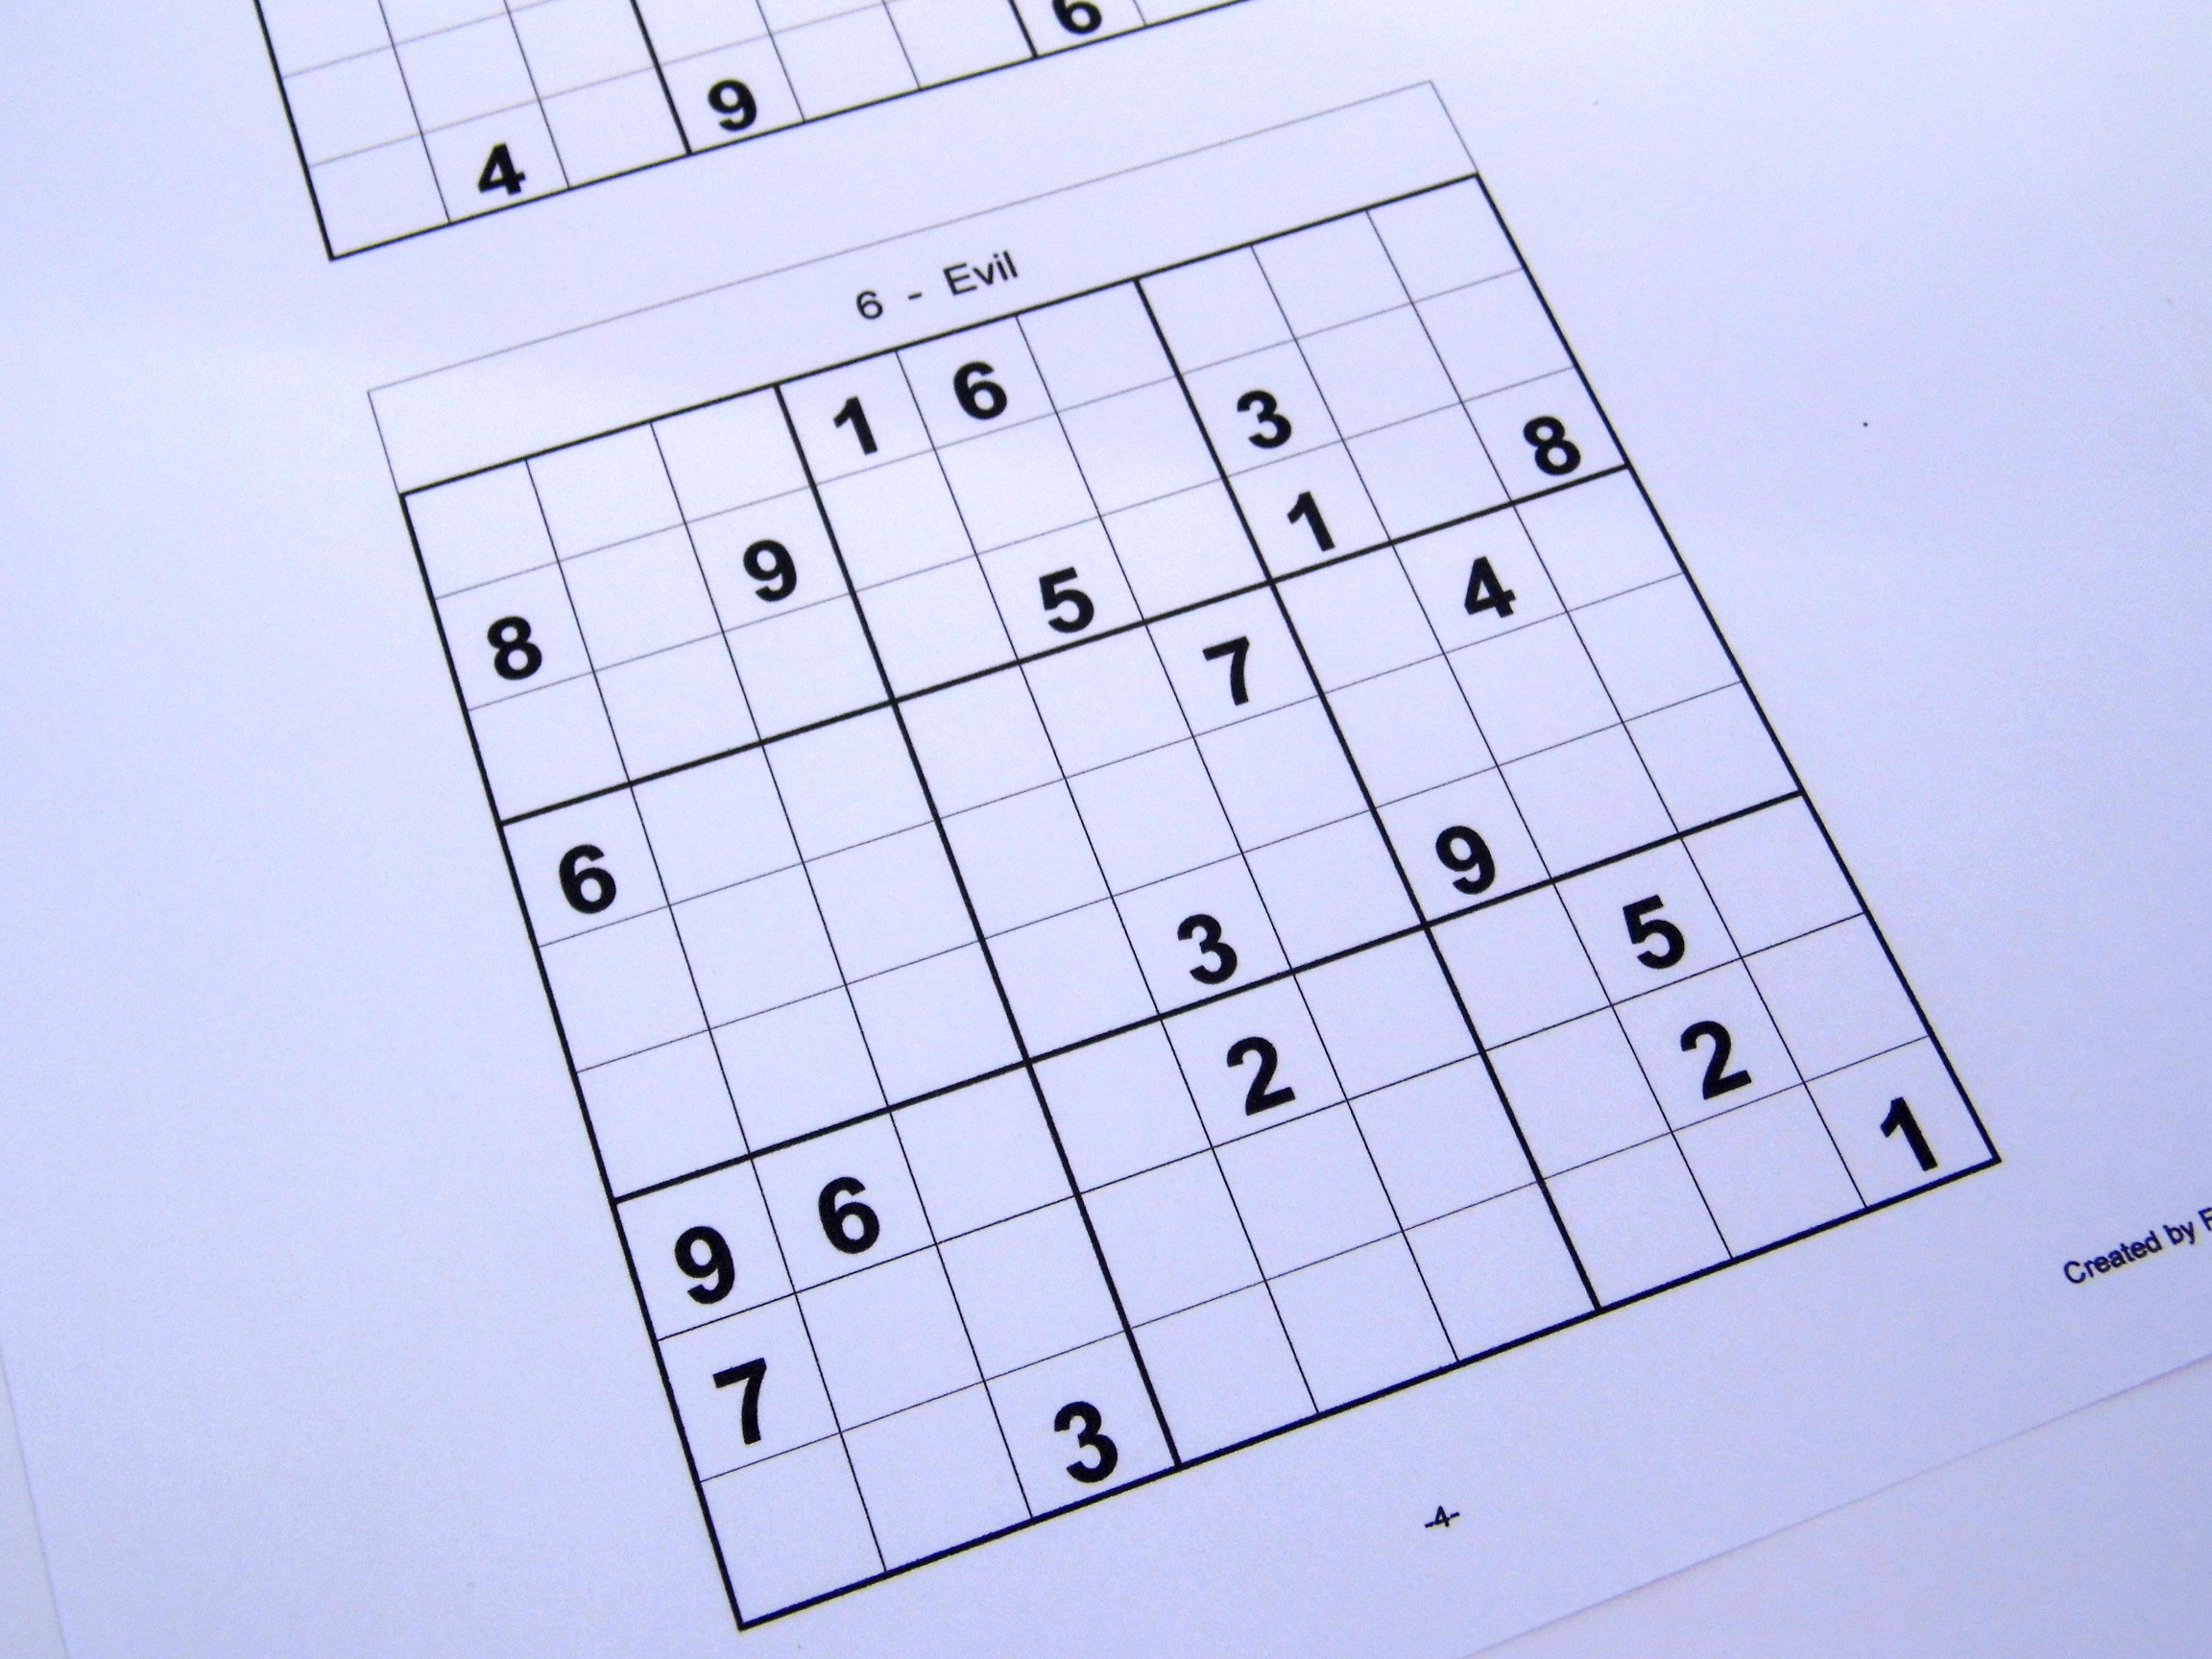 Hard Printable Sudoku Puzzles 6 Per Page – Book 1 – Free Sudoku Puzzles - Printable Sudoku Puzzles 1 Per Page